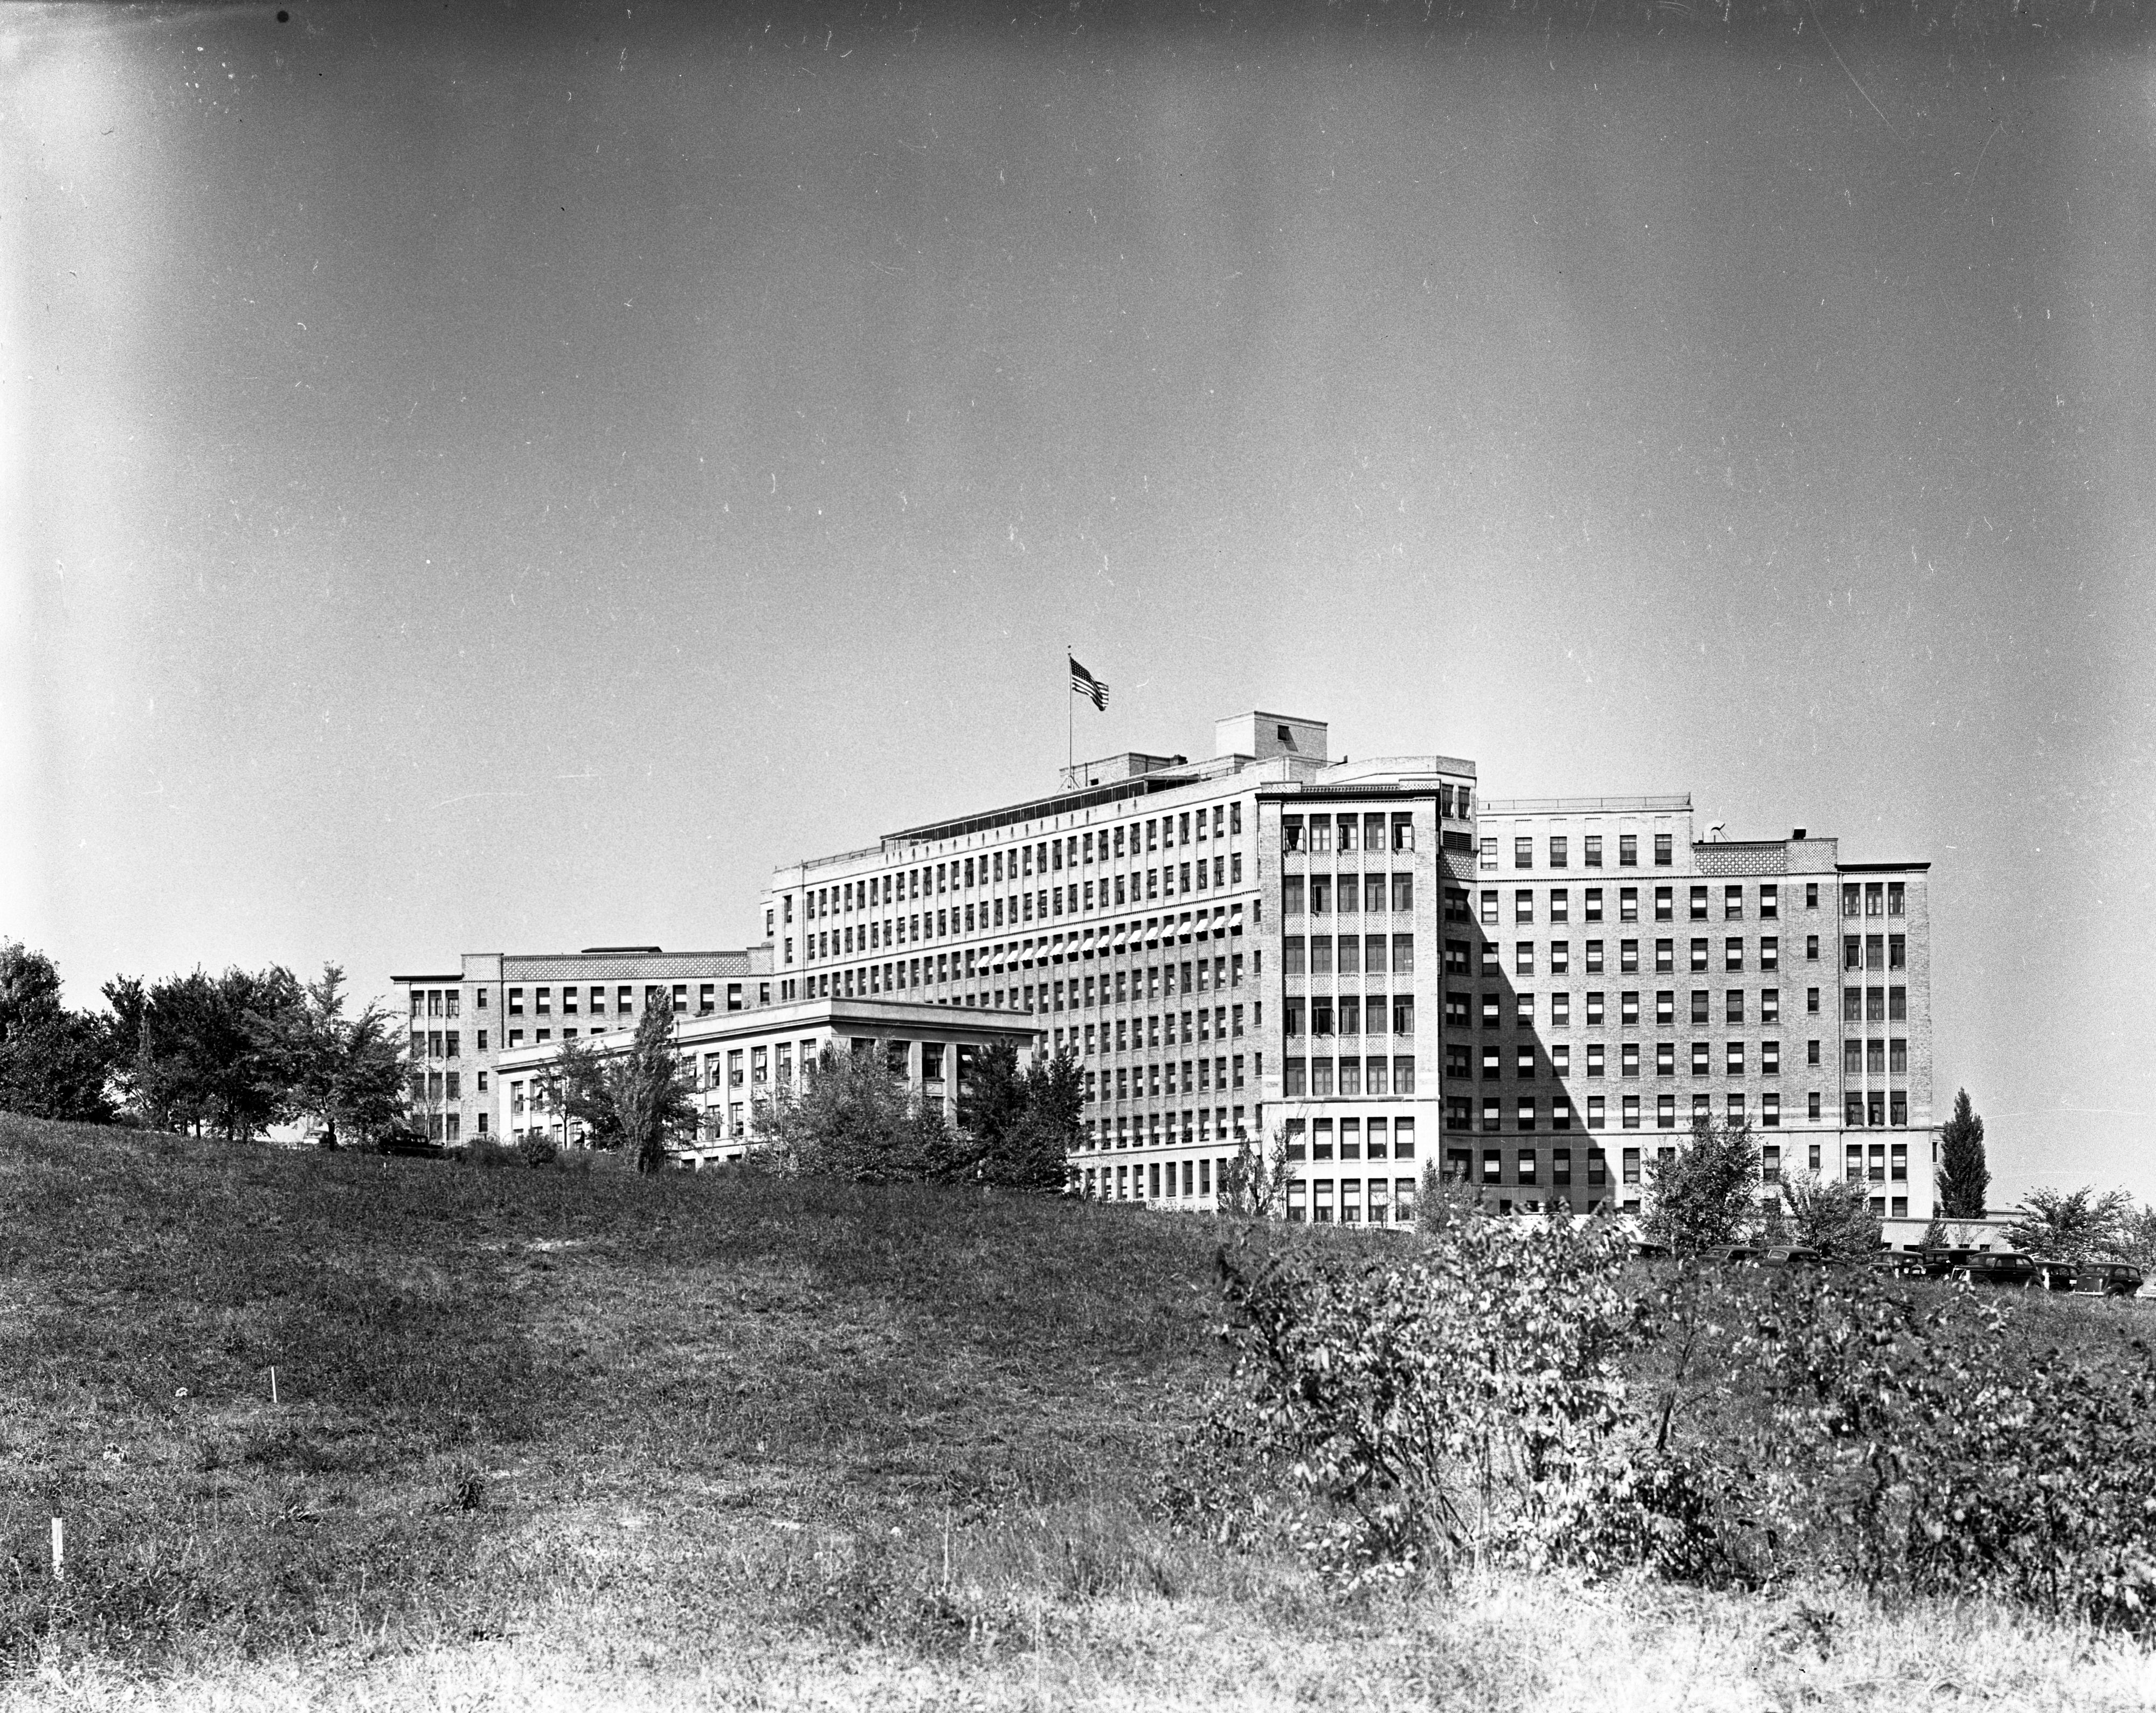 University of Michigan Hospital (Old Main), October 1938 image